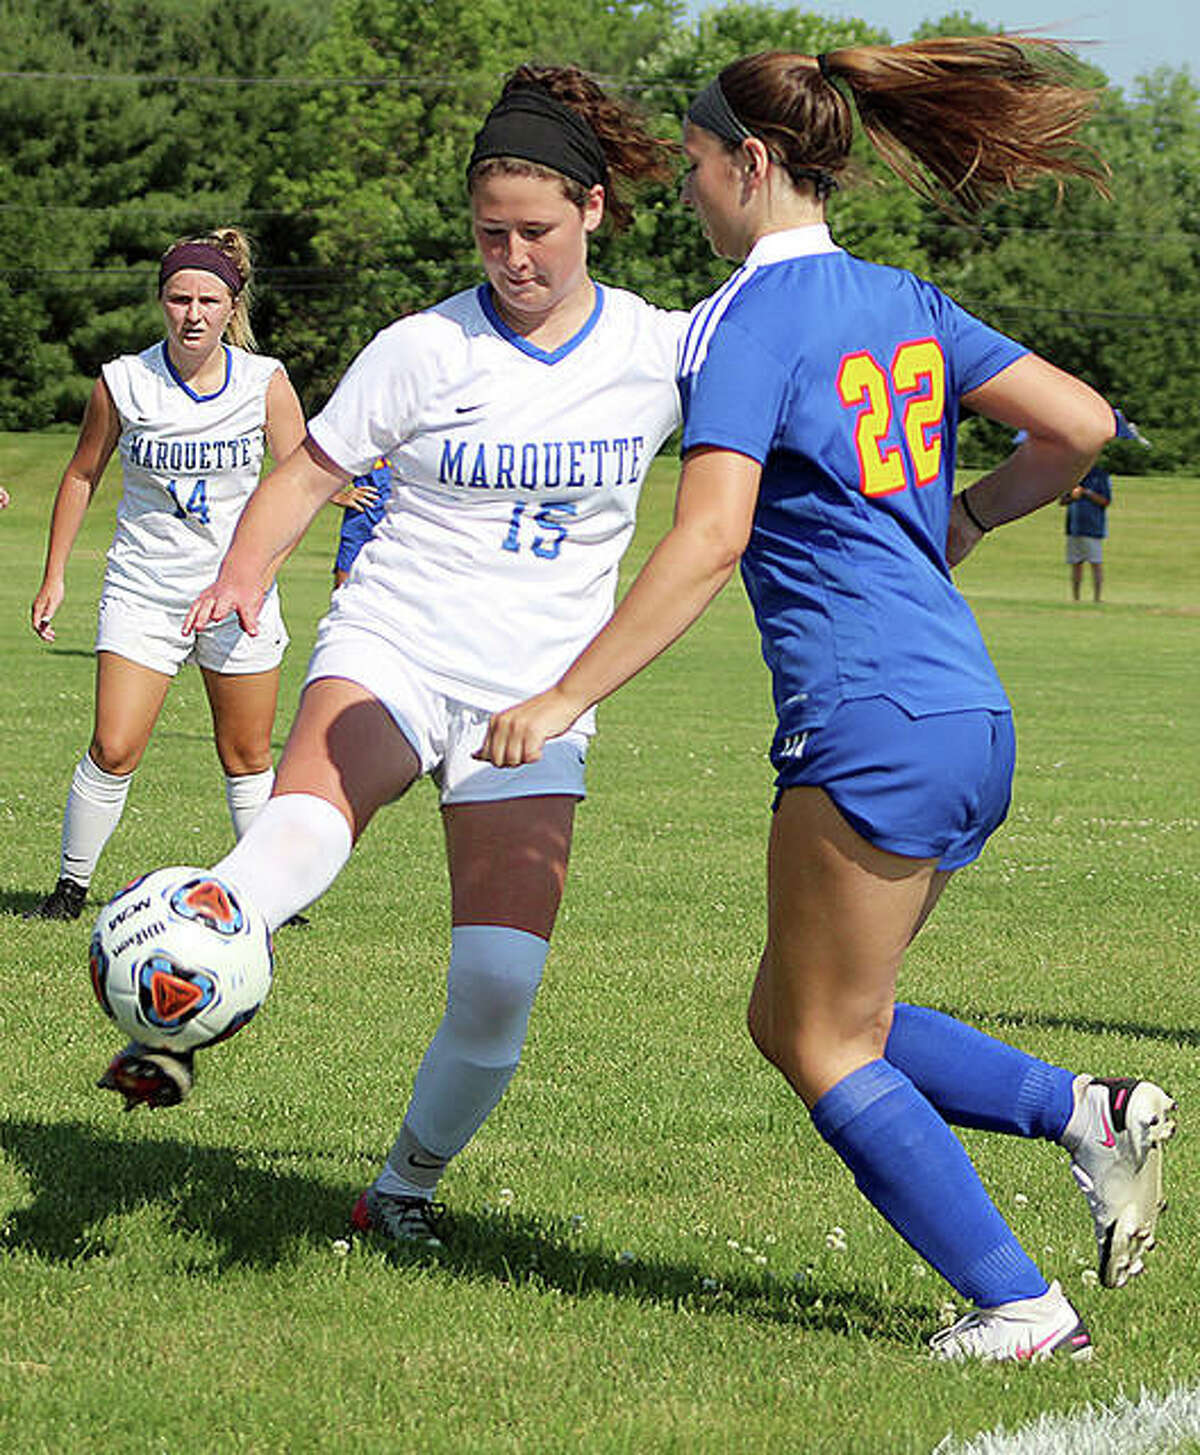 Madelyn Smith of Marquette (15) controls the ball in last week's sectional championship game.